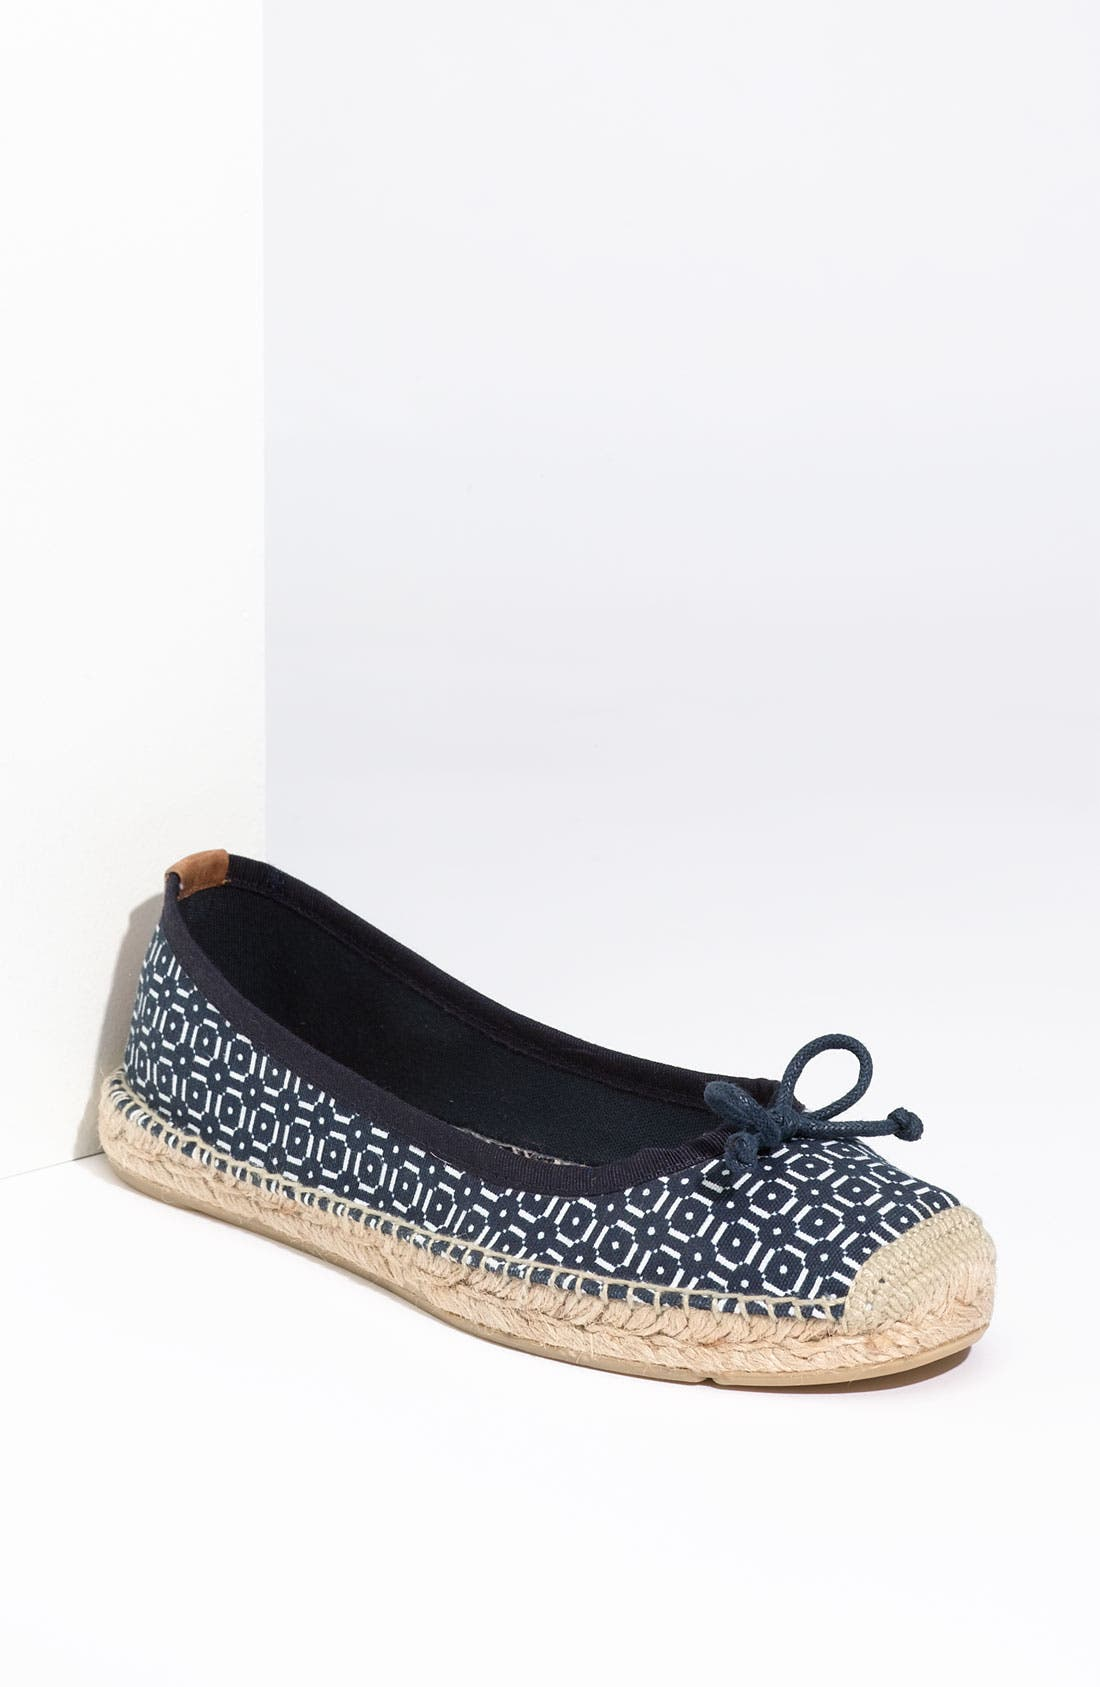 Alternate Image 1 Selected - Tory Burch Printed Flat Espadrille